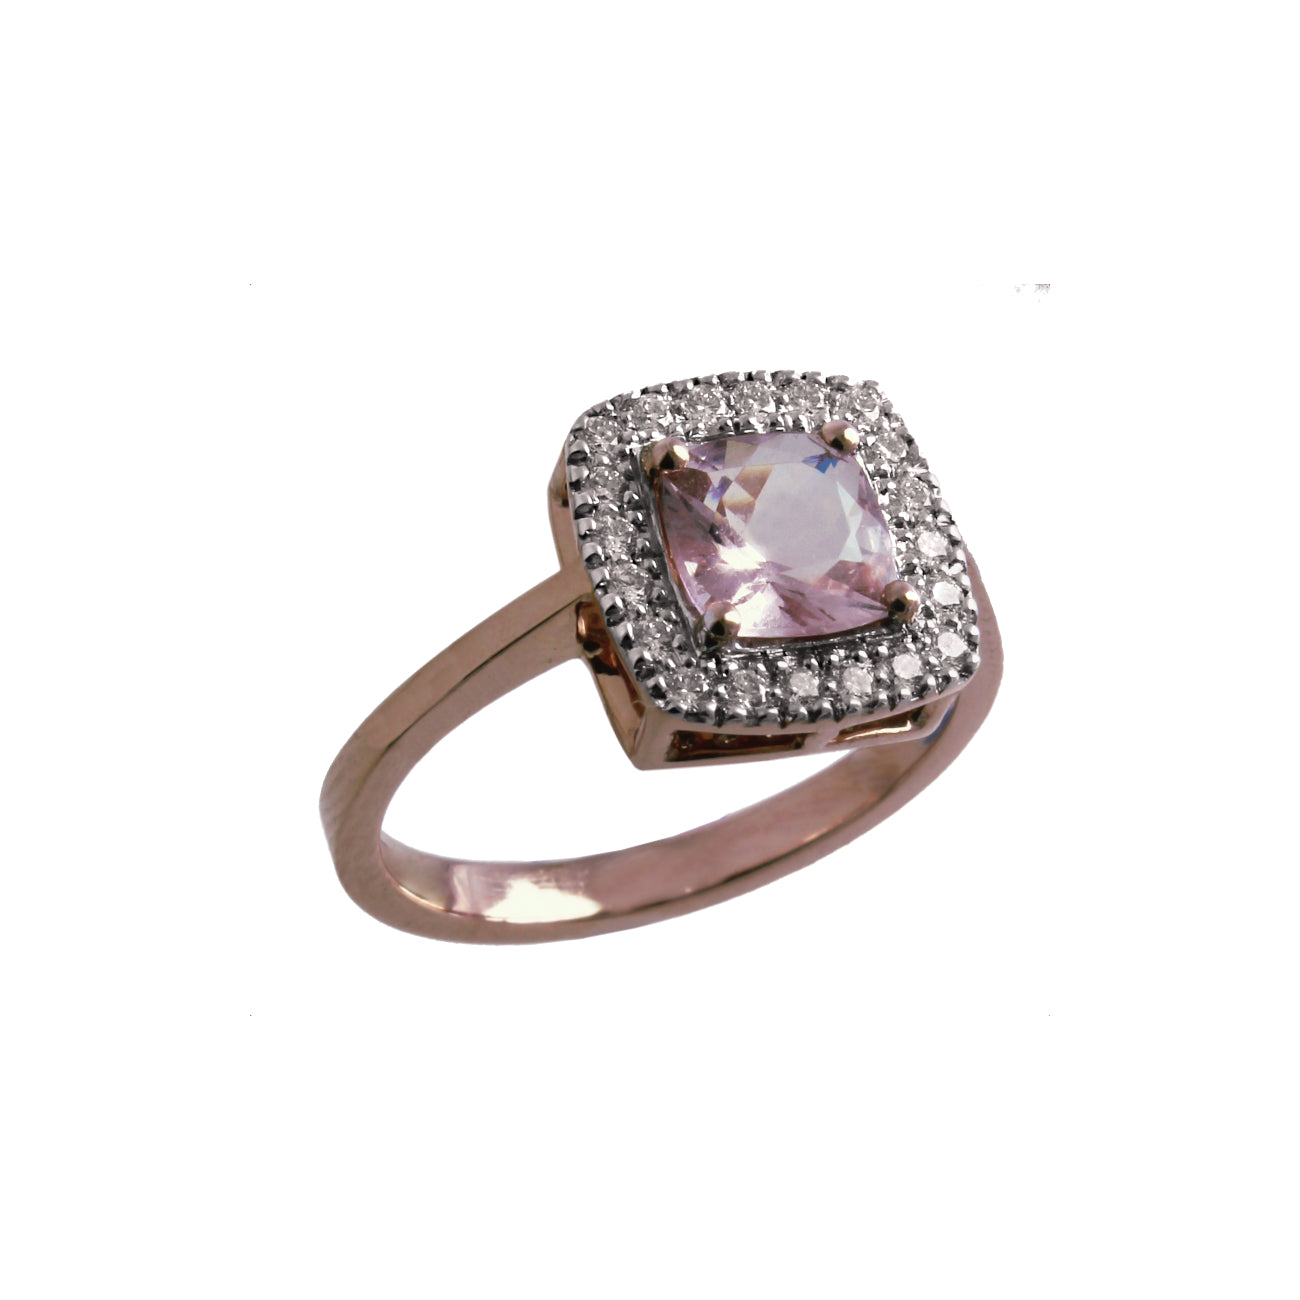 The Cushion Morganite